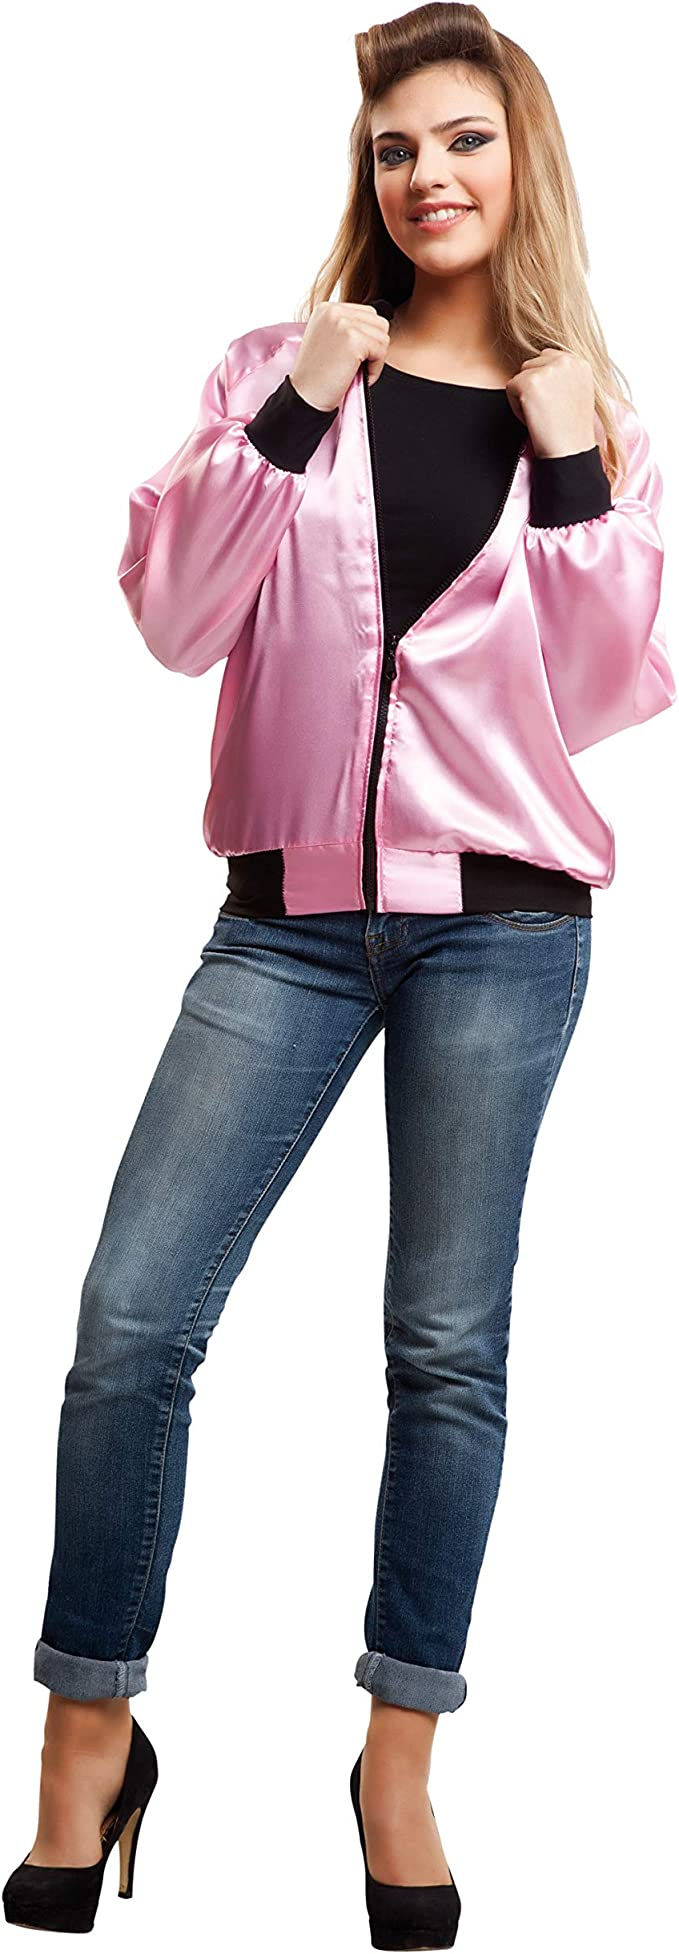 My Other Me Me-203358 Disfraz Pink Lady para mujer, M-L (Viving ...